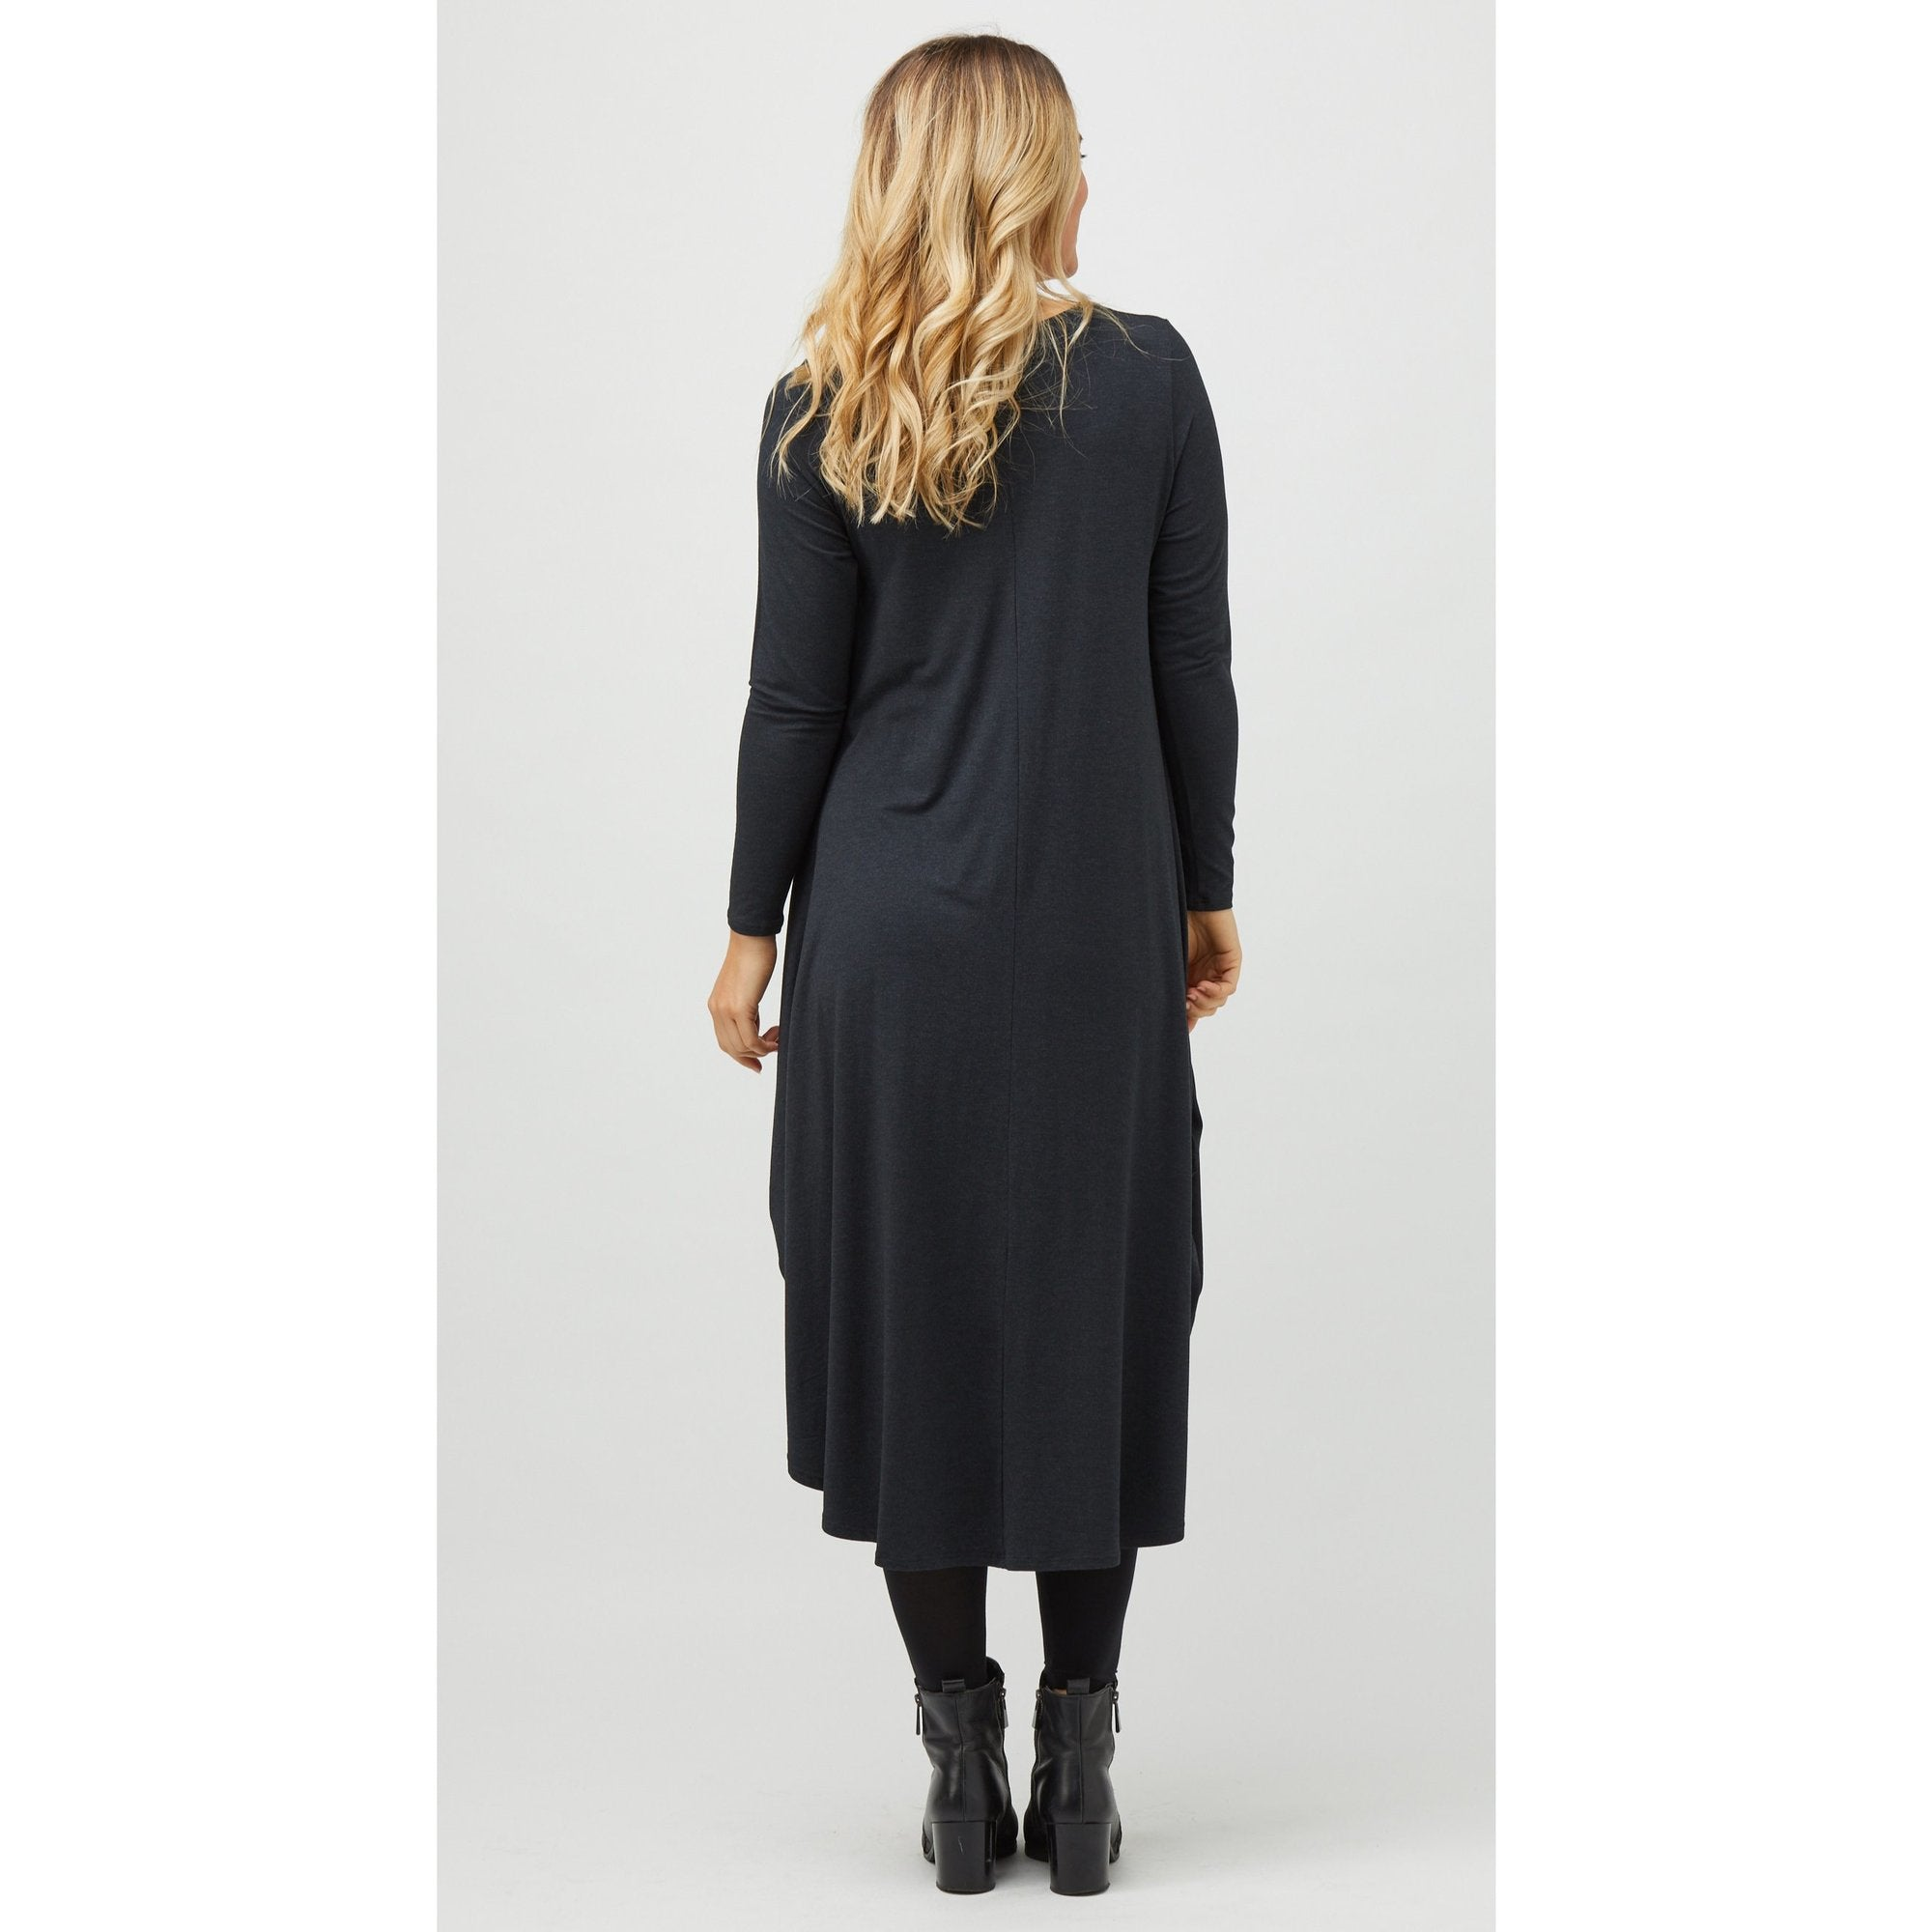 Long Sleeve Tri Dress in Graphite Melange